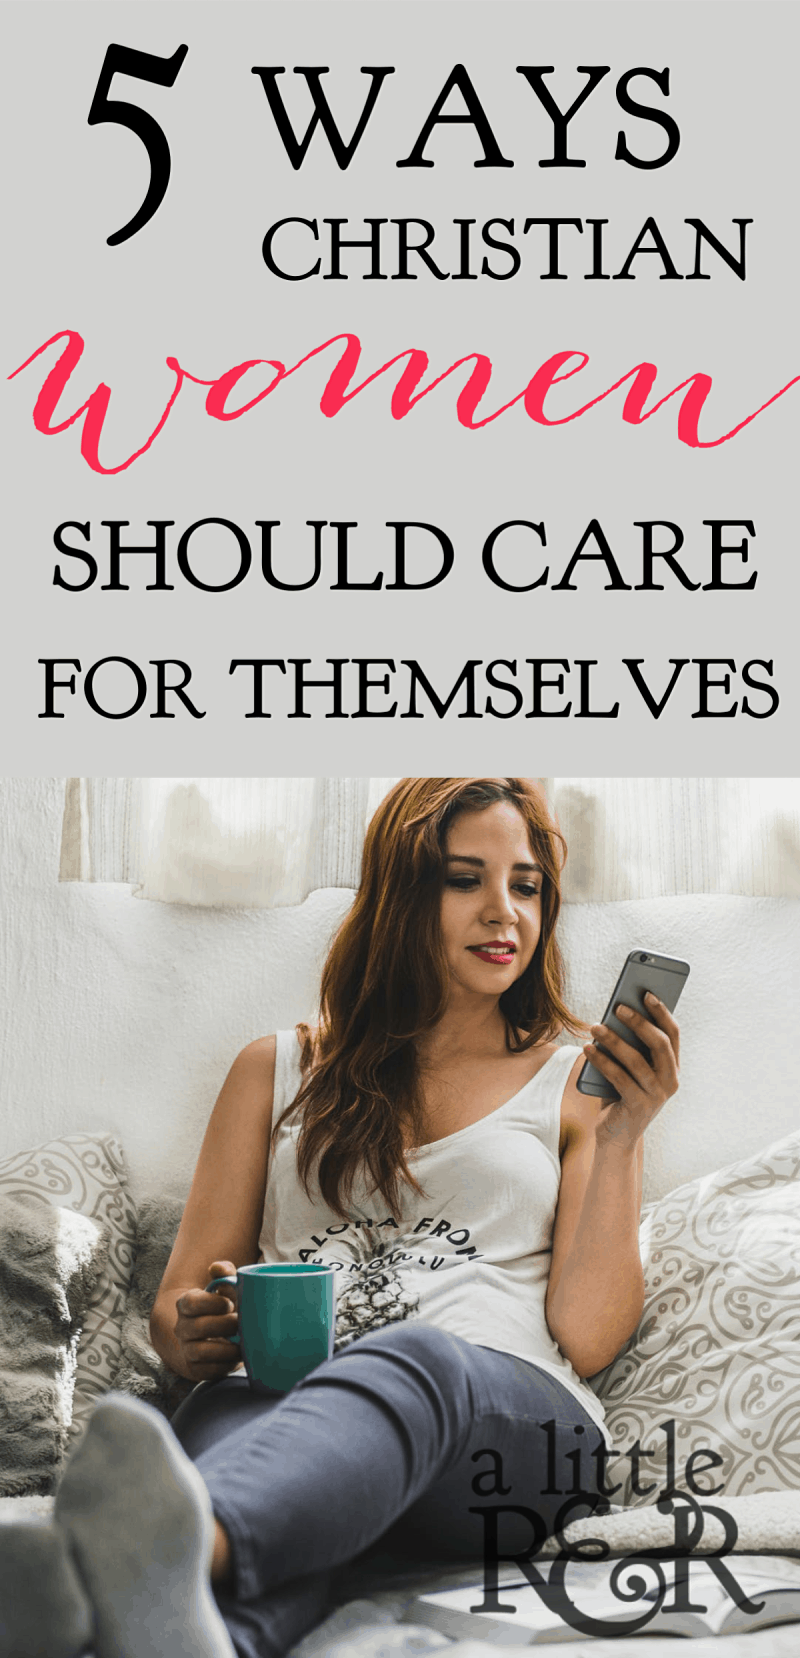 5 ways Christian women should care for themselves in this age of self care, affirmations, and Hygge and how our motivation behind it matters. #alittlerandr #selfcare #hygge #affirmations #meditation